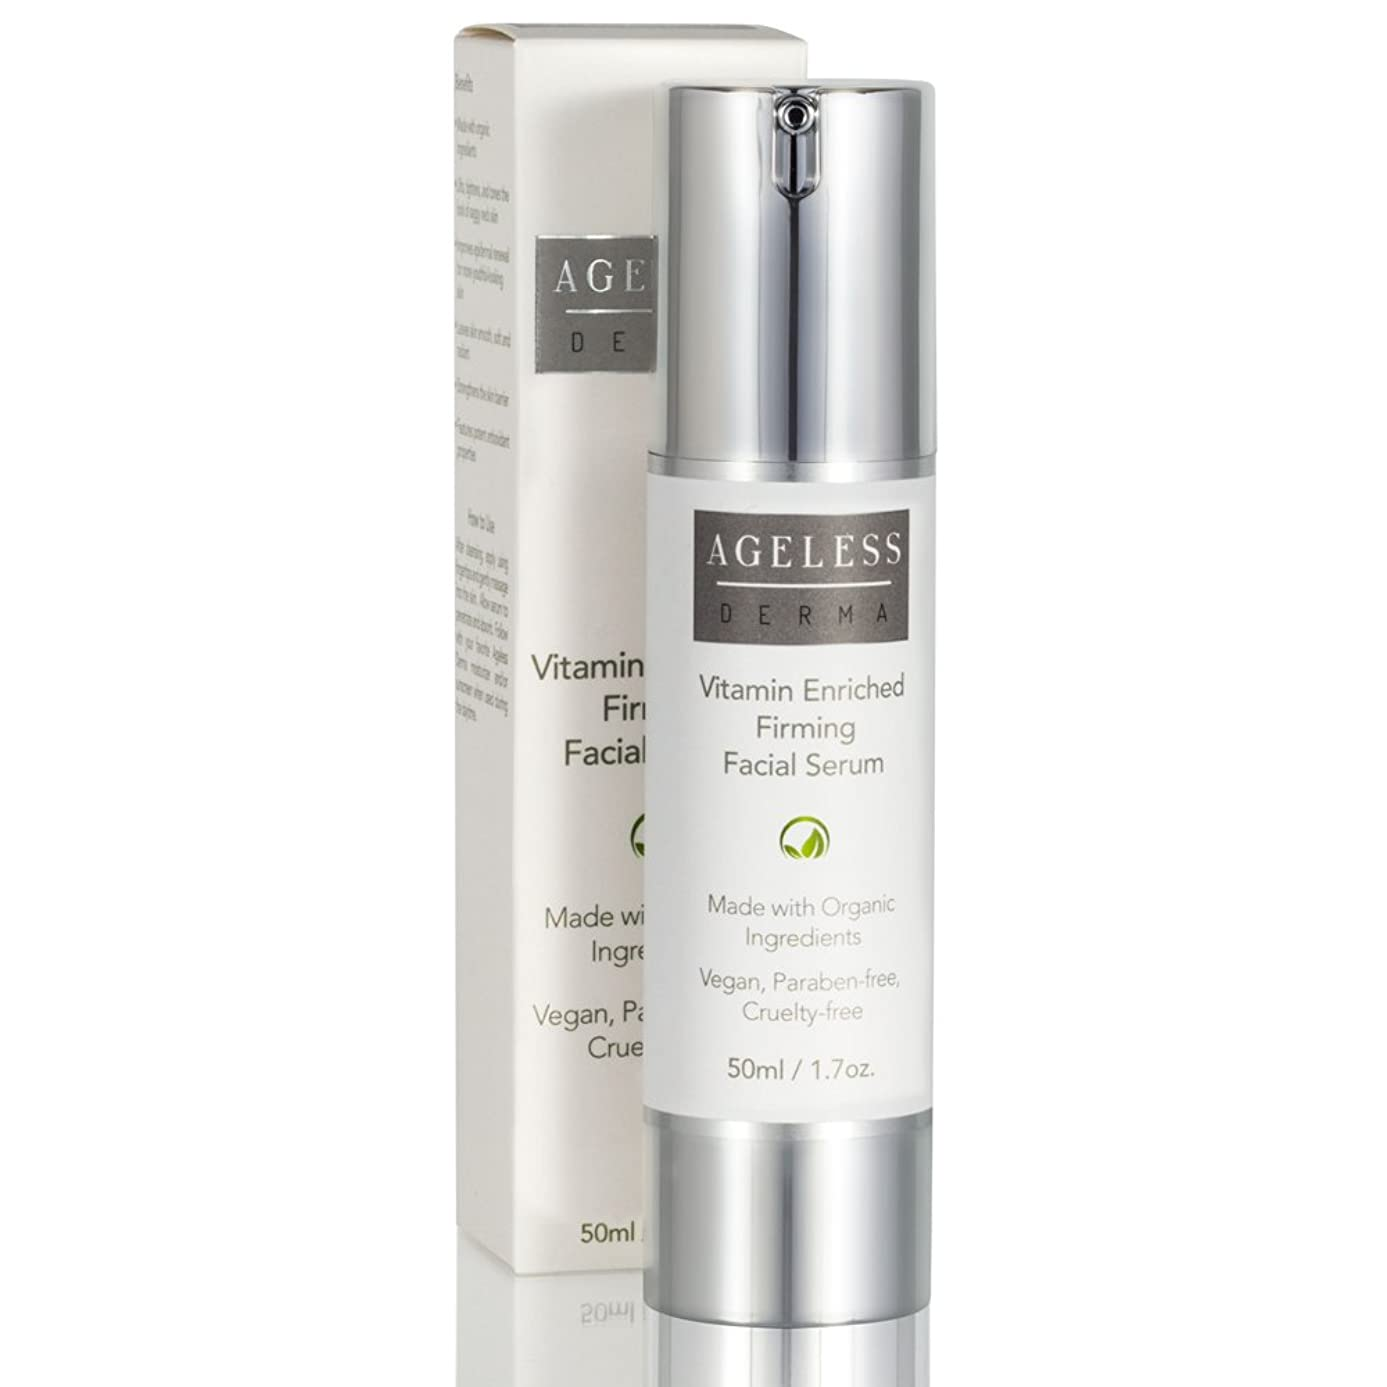 Ageless Derma Anti Aging Face Serum by Dr. Mostamand is a Natural Wrinkle Night Facial Moisturizer Cream for a Healthy and Ageless Skin